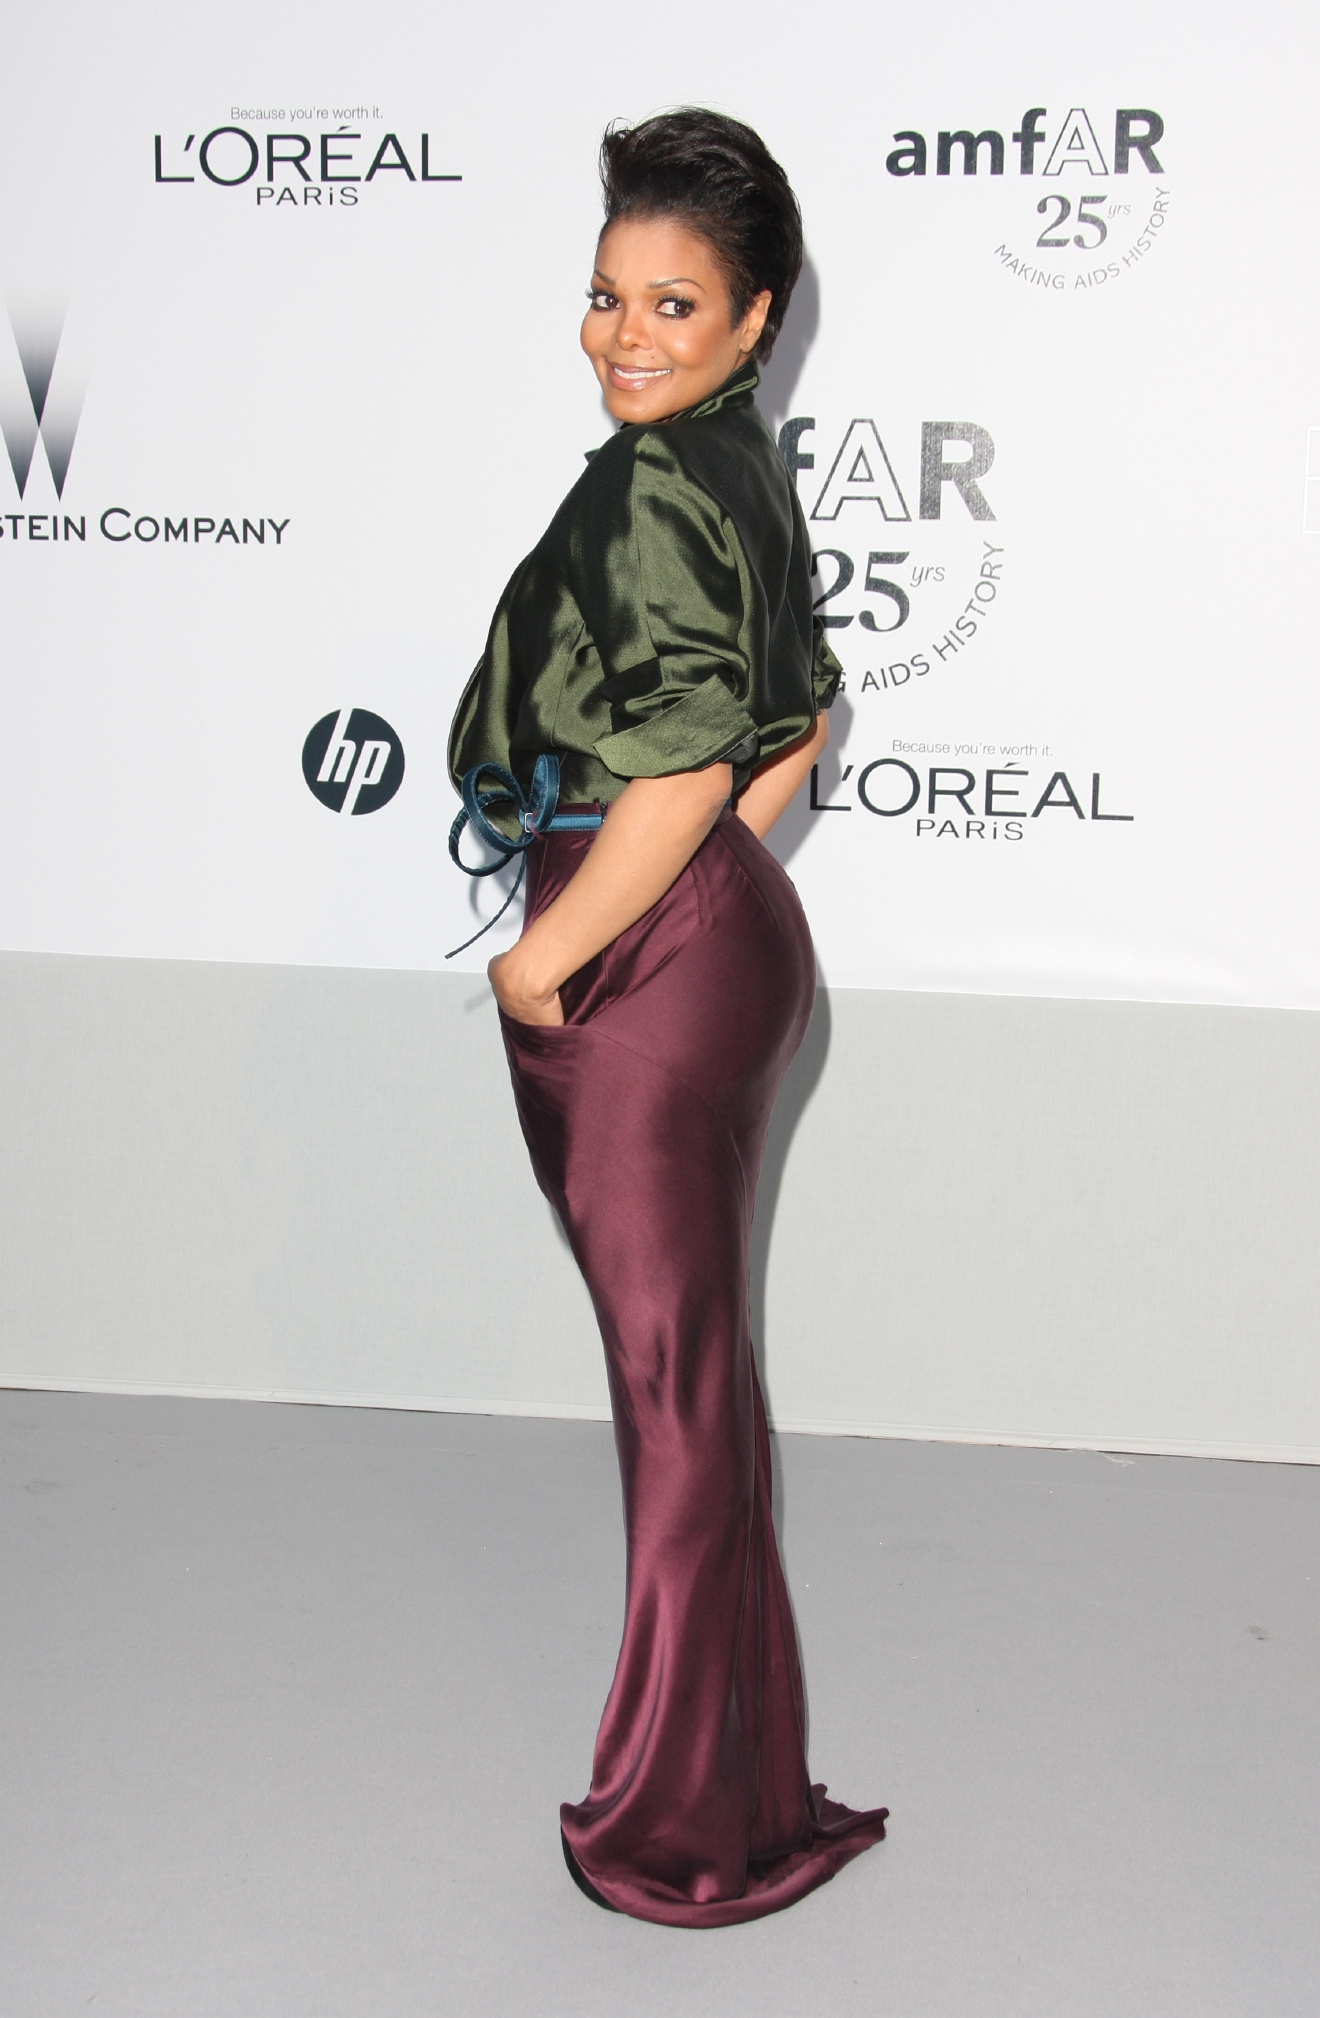 Janet Jackson 2011 Cannes International Film Festival - Day 9 amfAR Cinema Against AIDS Gala - Arrivals Cap d�  Featuring: Janet Jackson Where: Antibes, France When: 19 May 2011 Credit: WENN